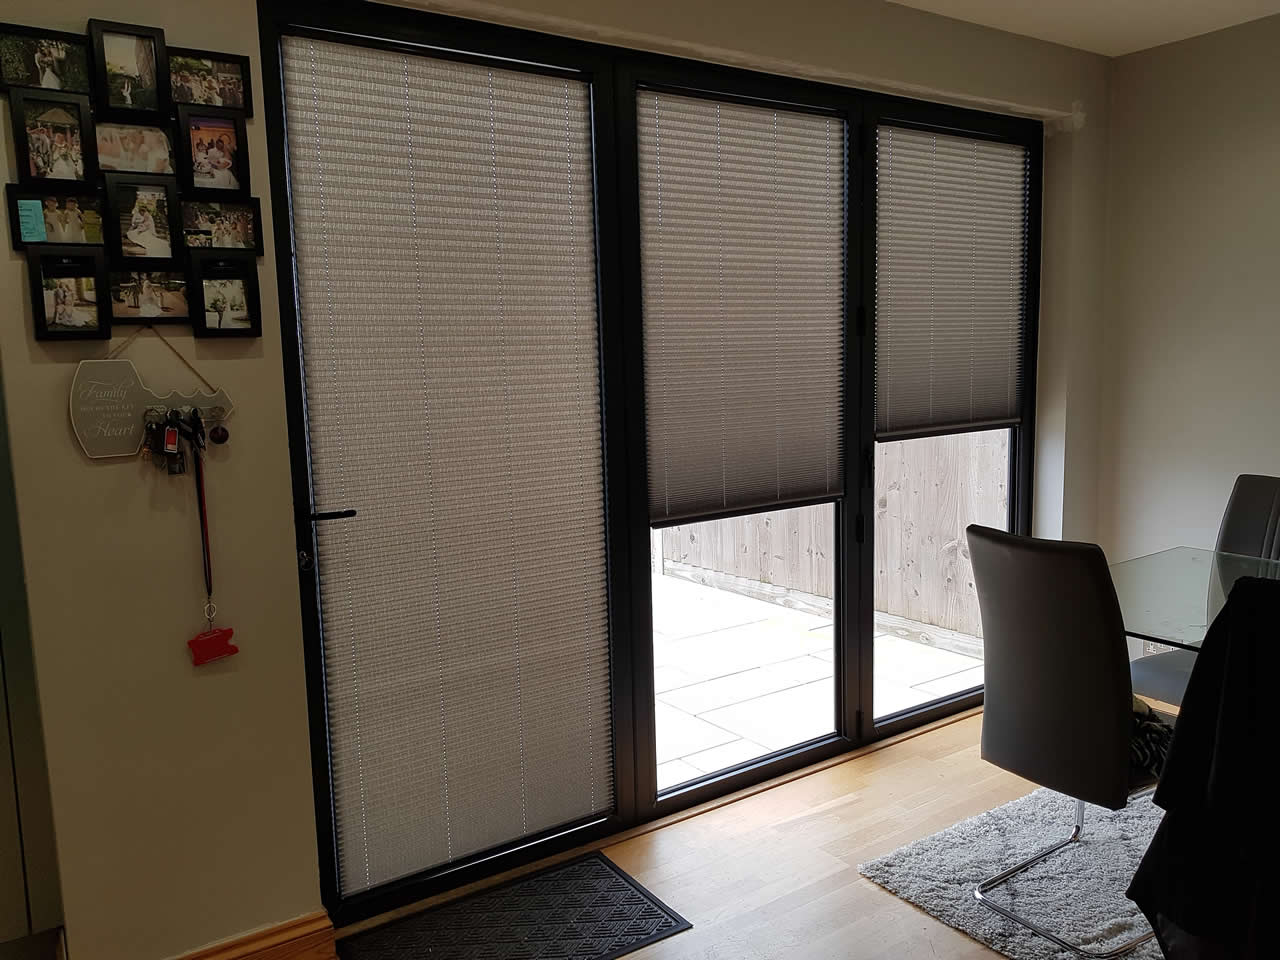 Intu micro blinds in Ribbons ASC Pewter